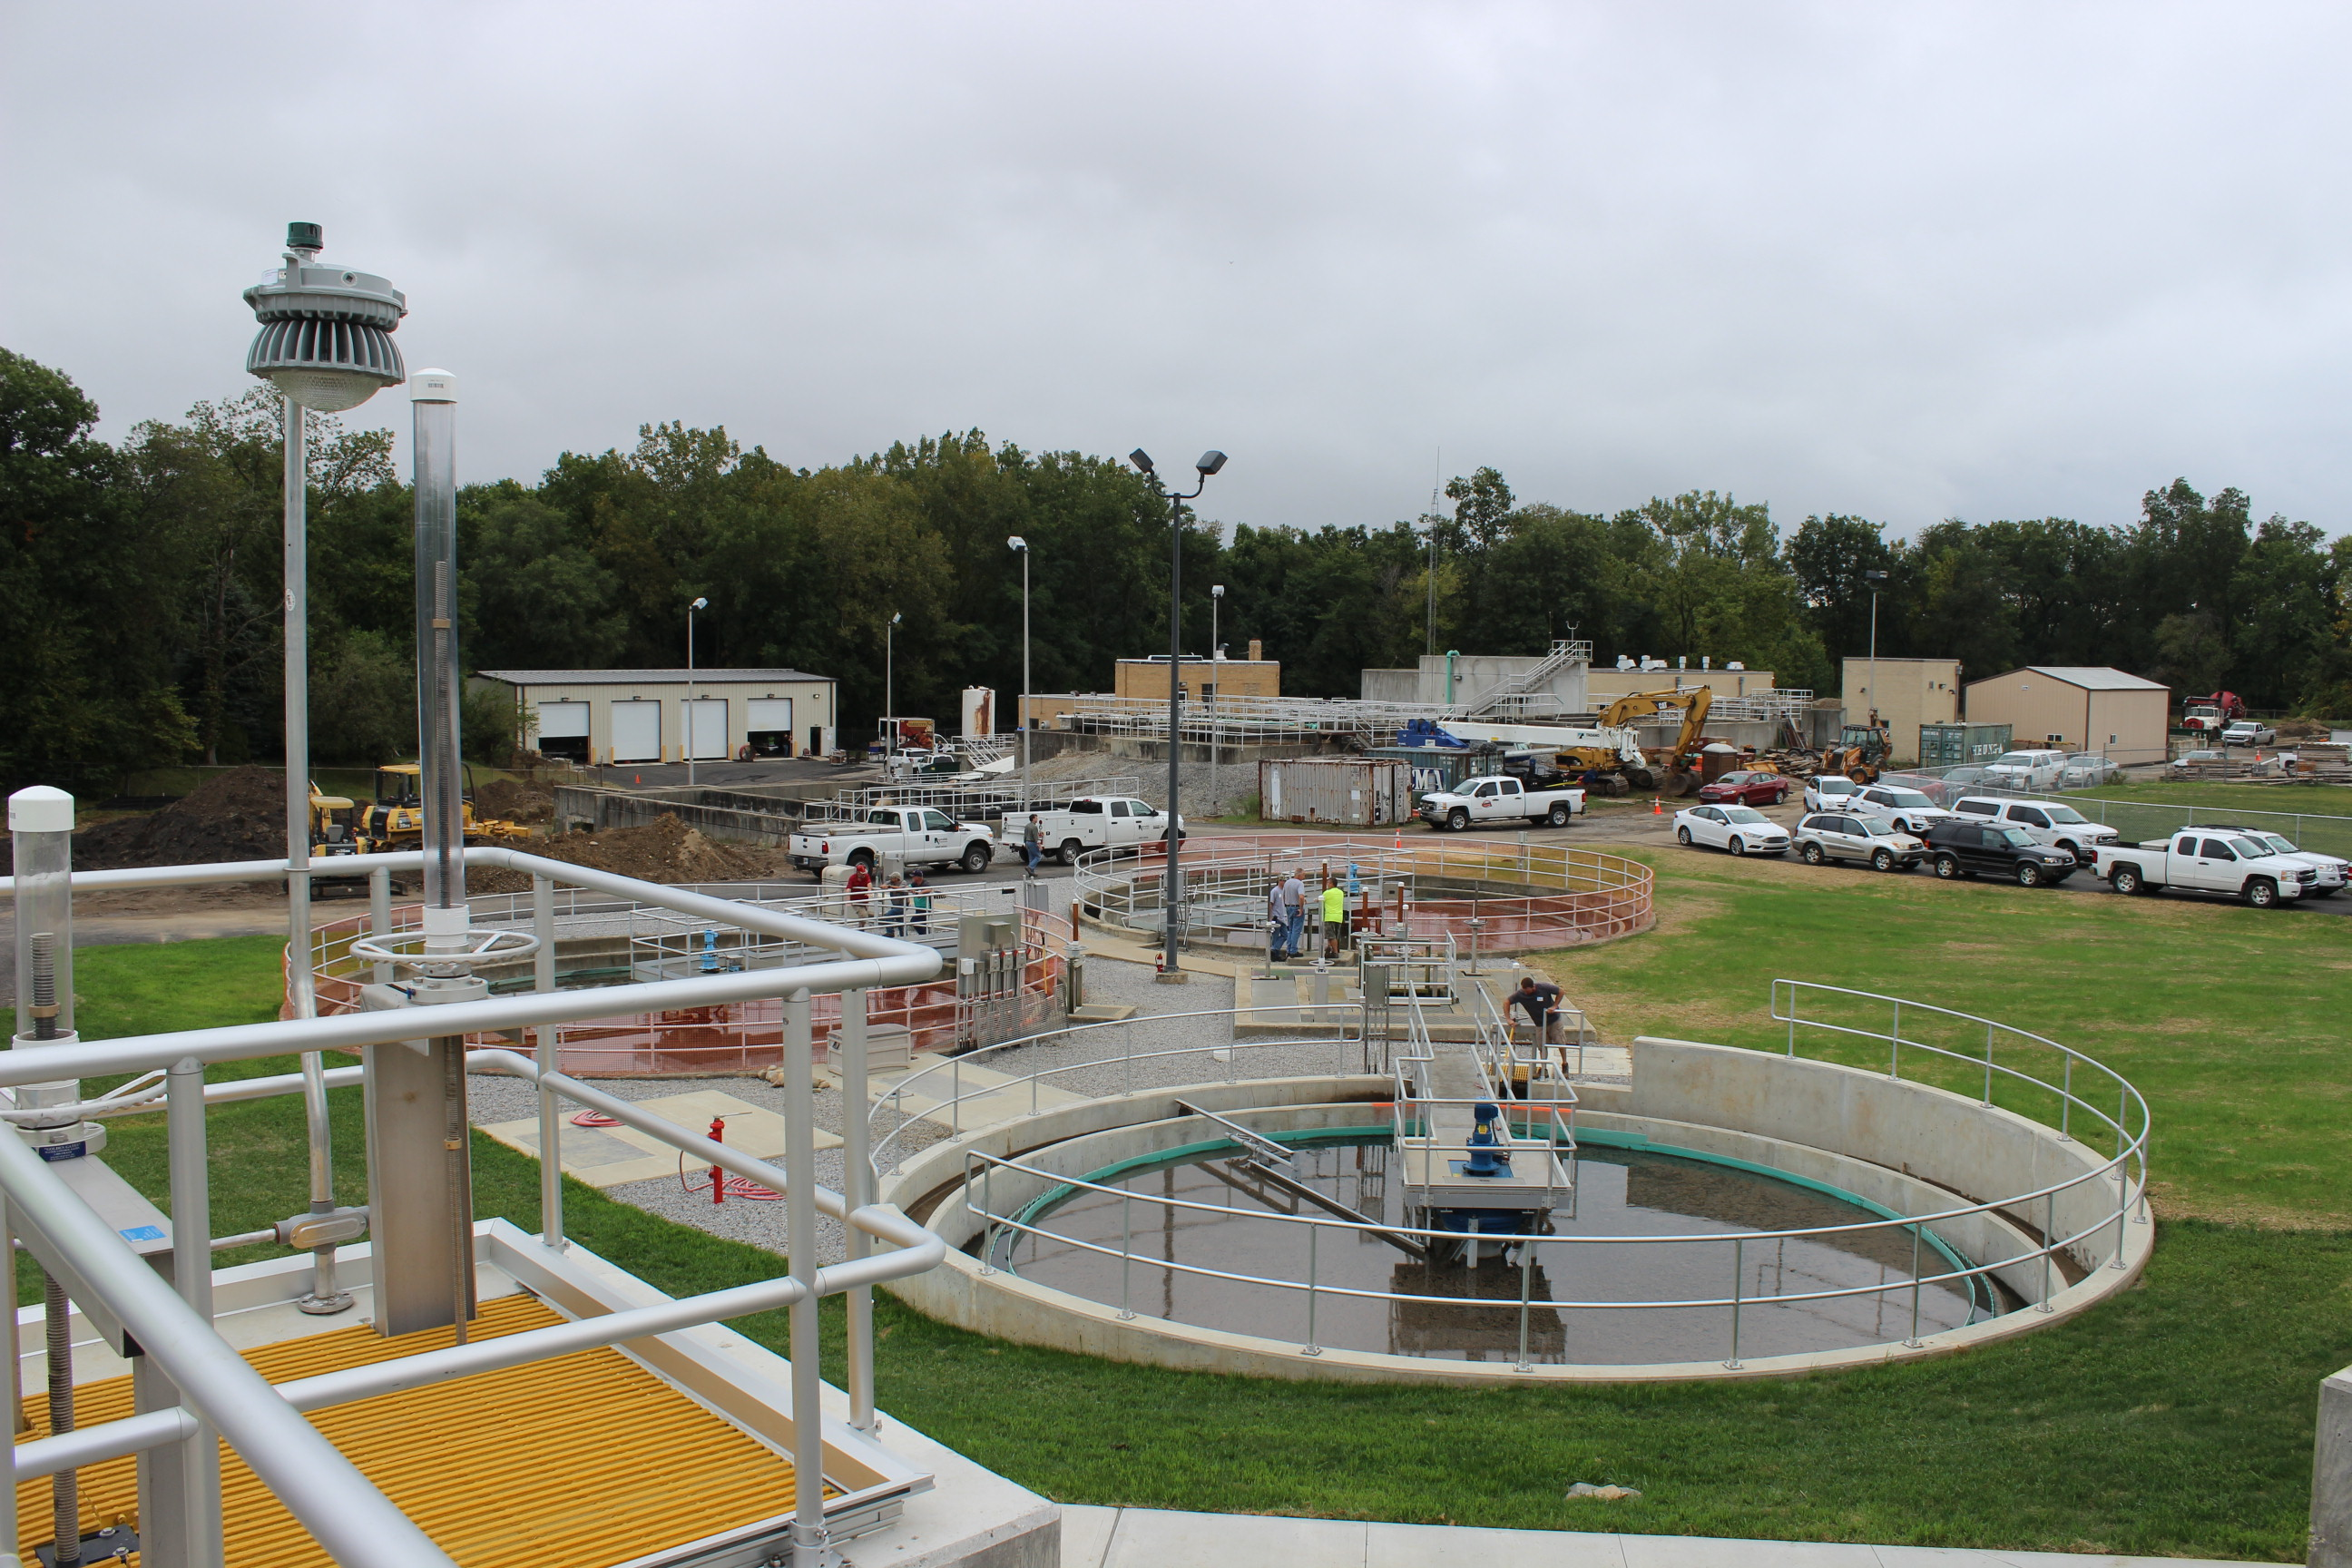 (VIDEO) Monticello WWTP Lunch & Learn Tour